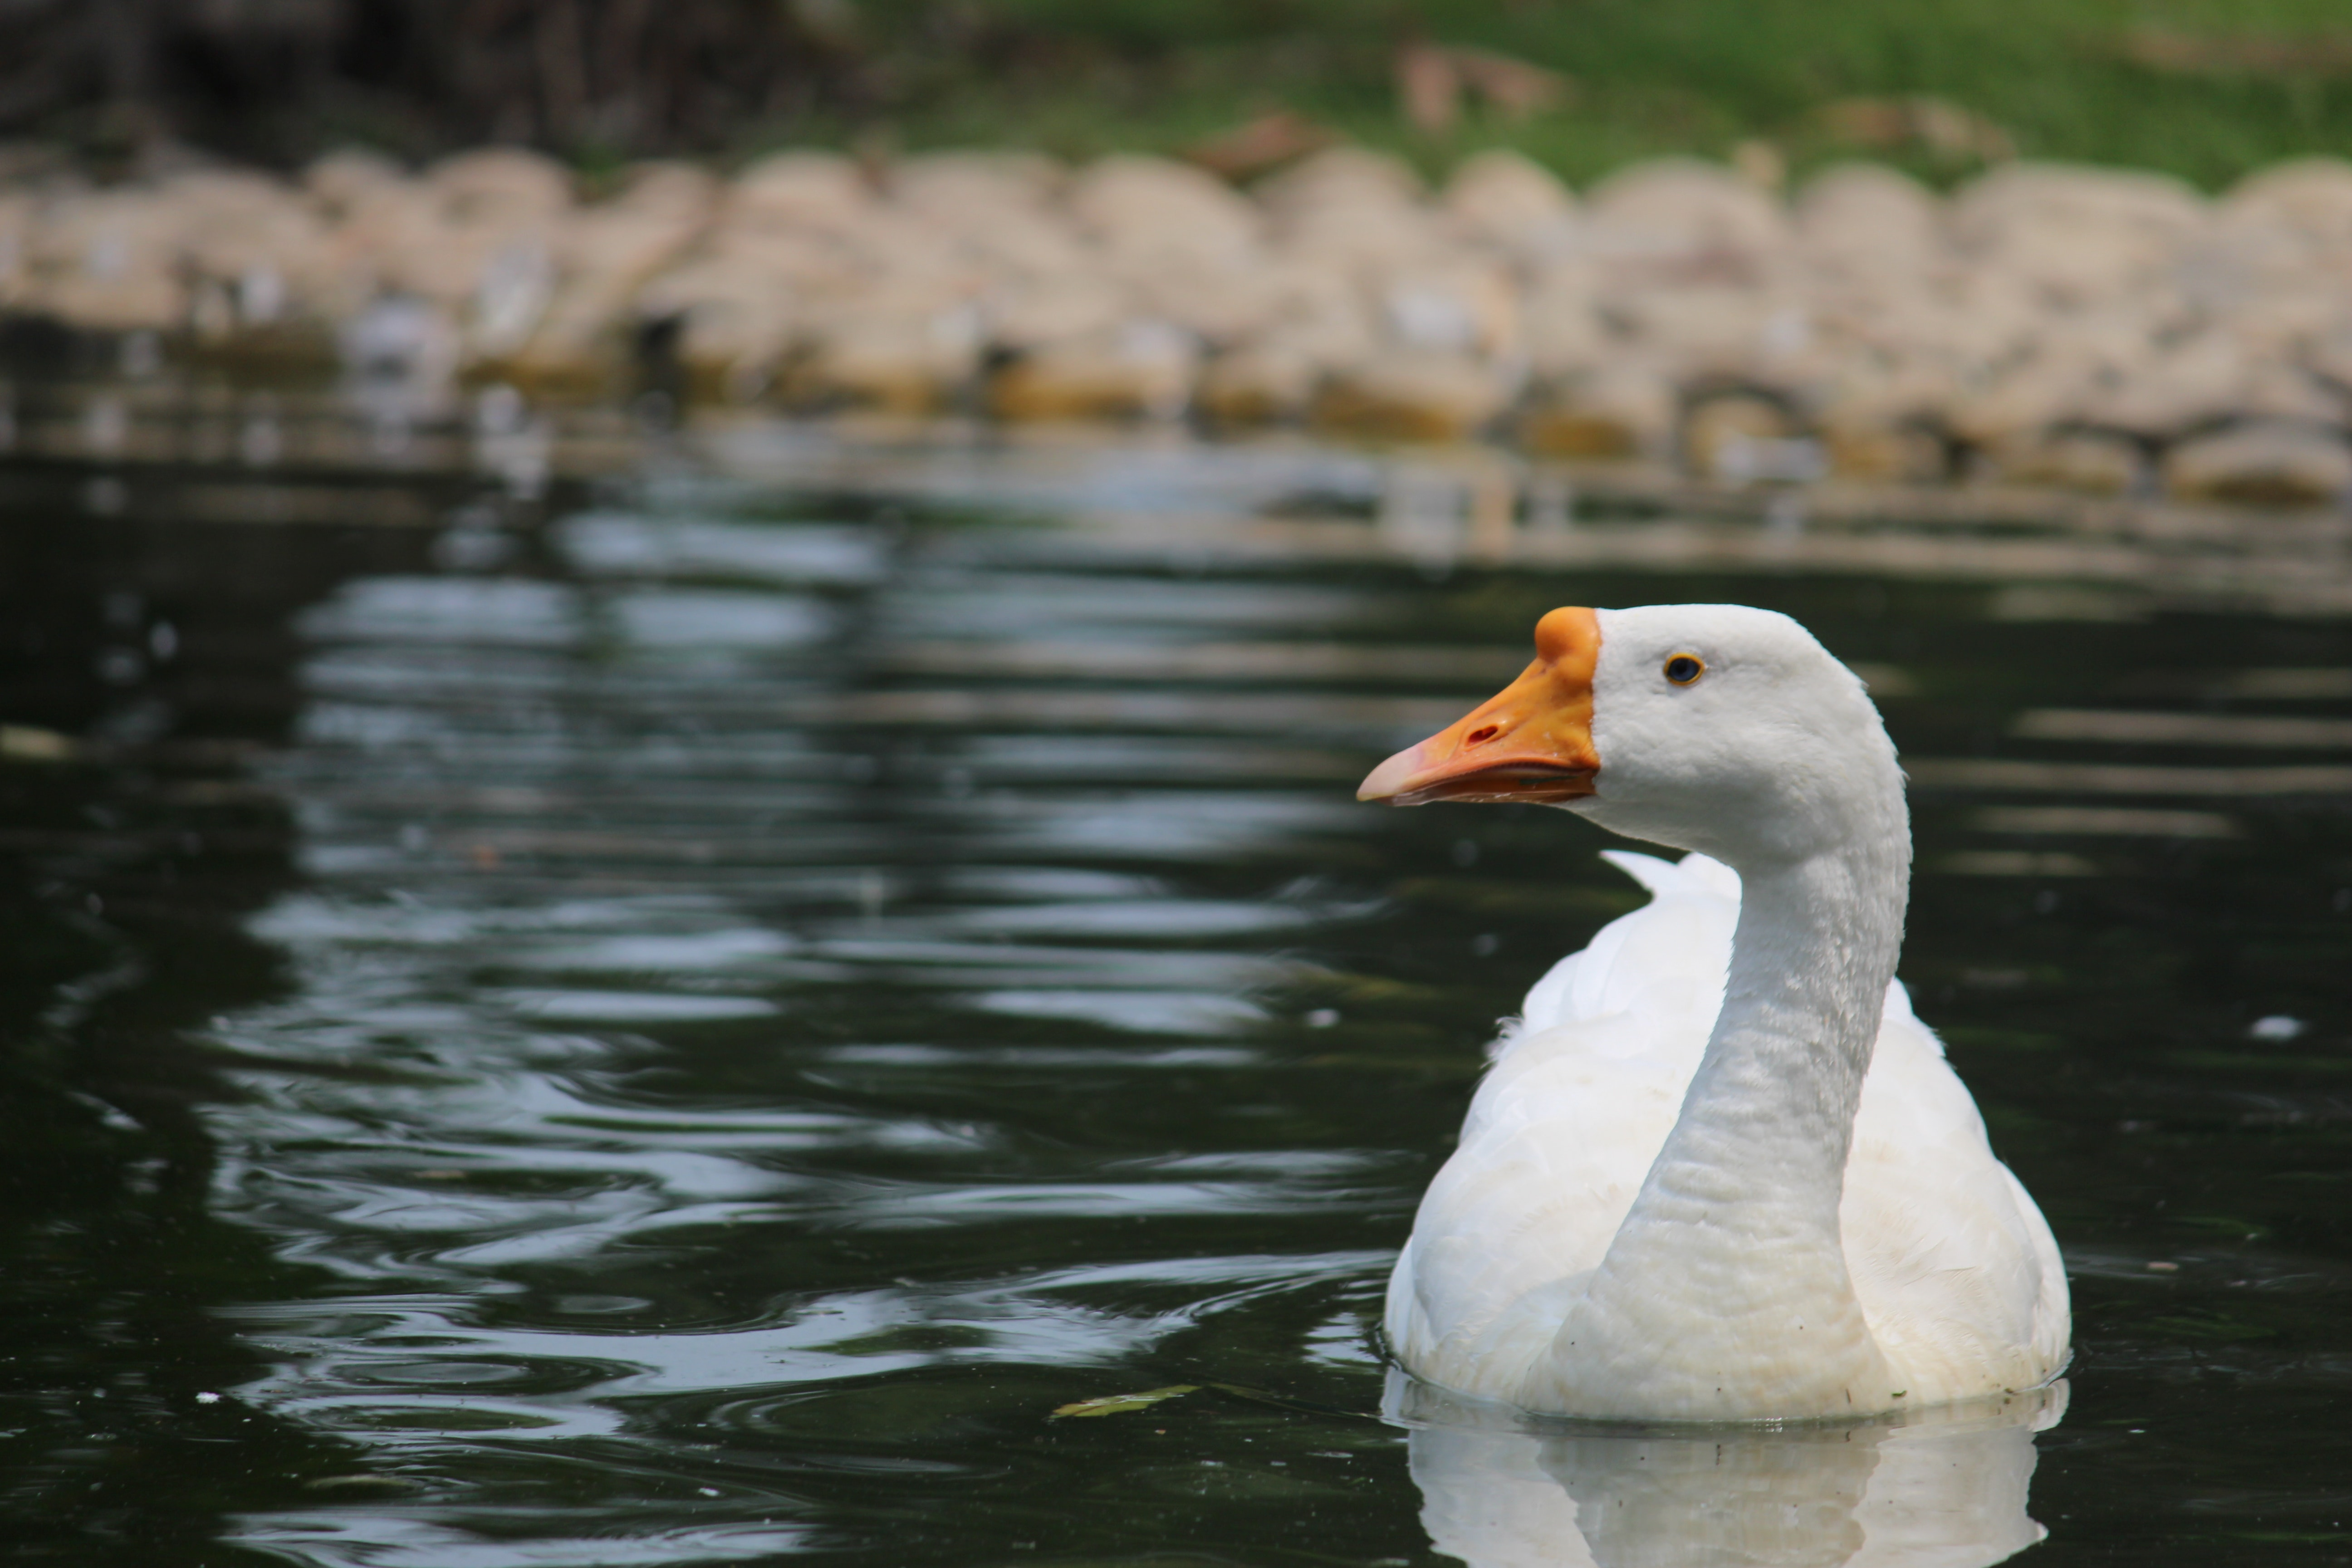 Goose on body of water photo